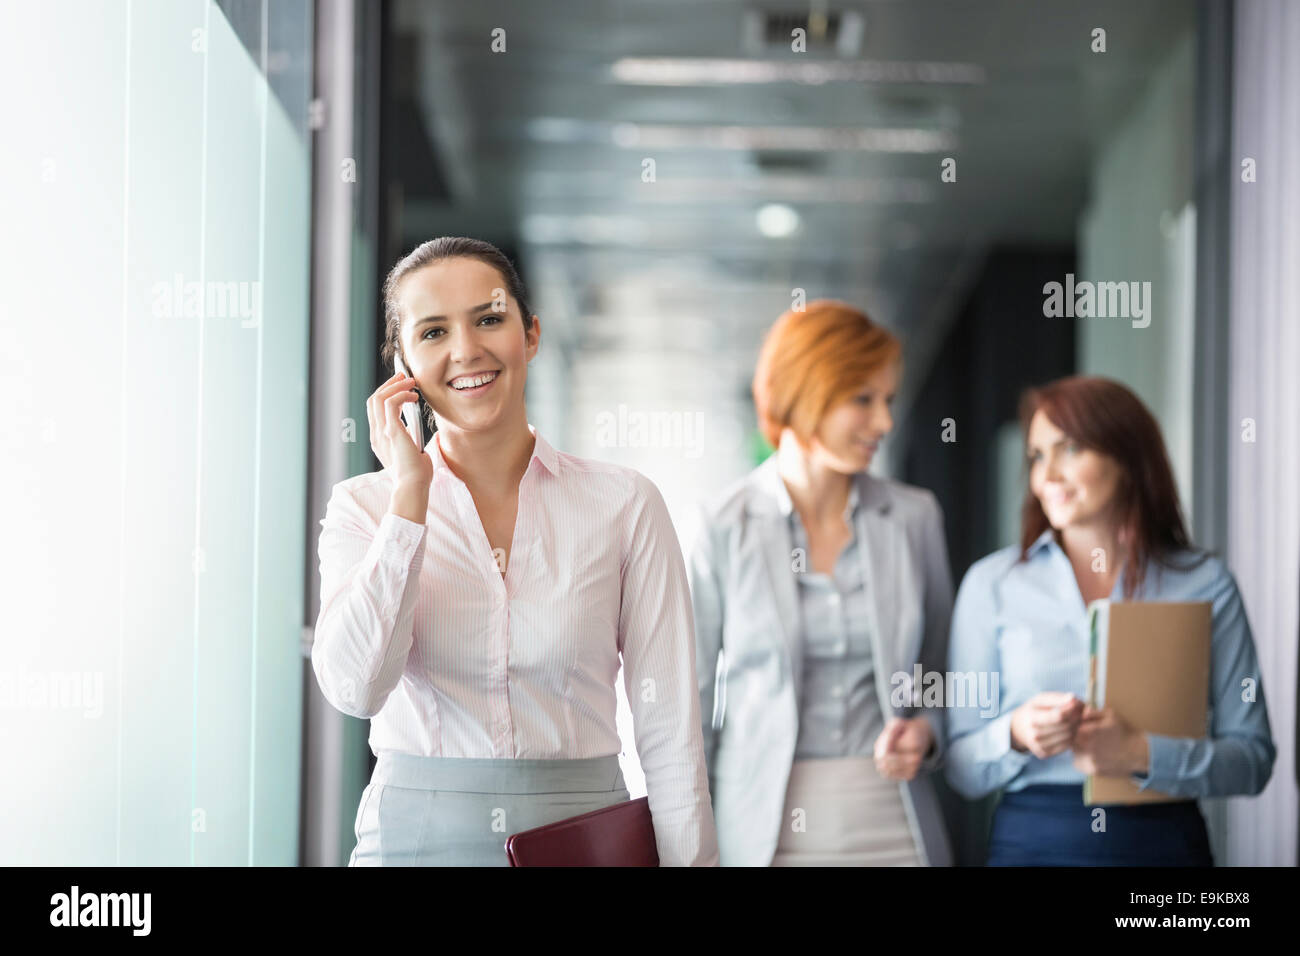 Young businesswoman on call with colleagues in background at office corridor - Stock Image